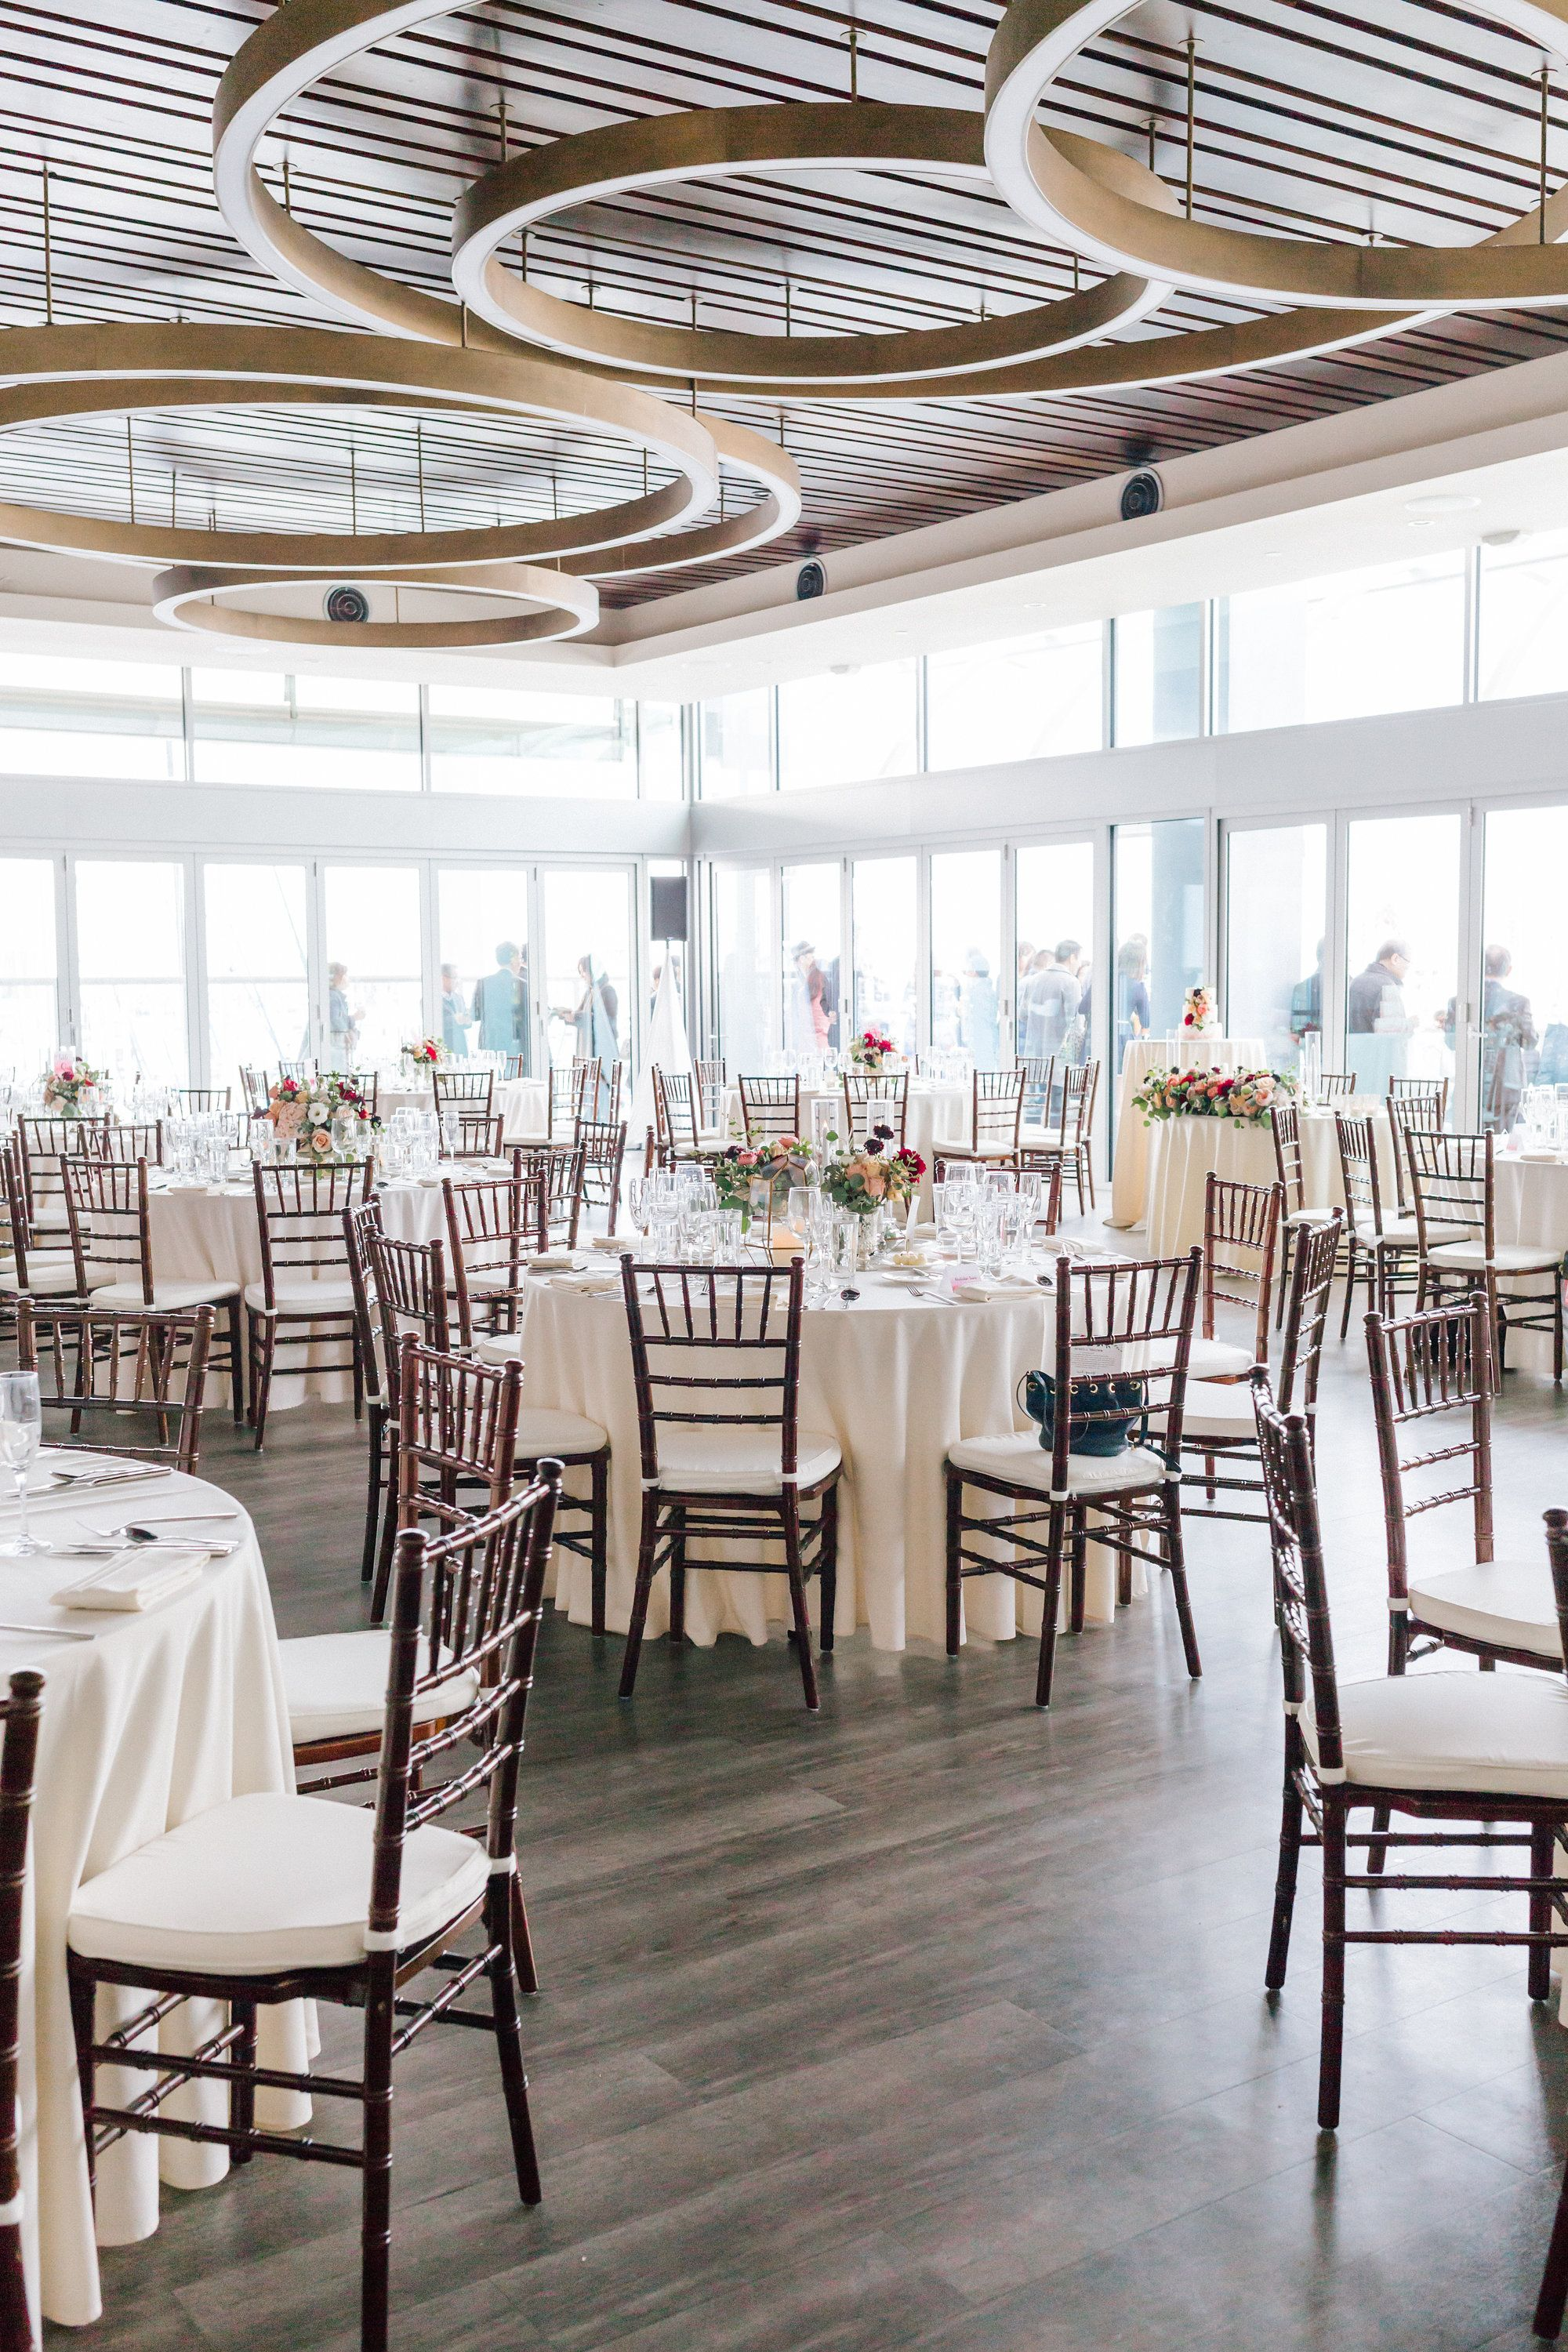 Celebrate Your Wedding With A Stunning Reception Space At Shade Hotel Redondo Beach The Marina Views Will Take Your Hotel Wedding Venues Redondo Beach Redondo